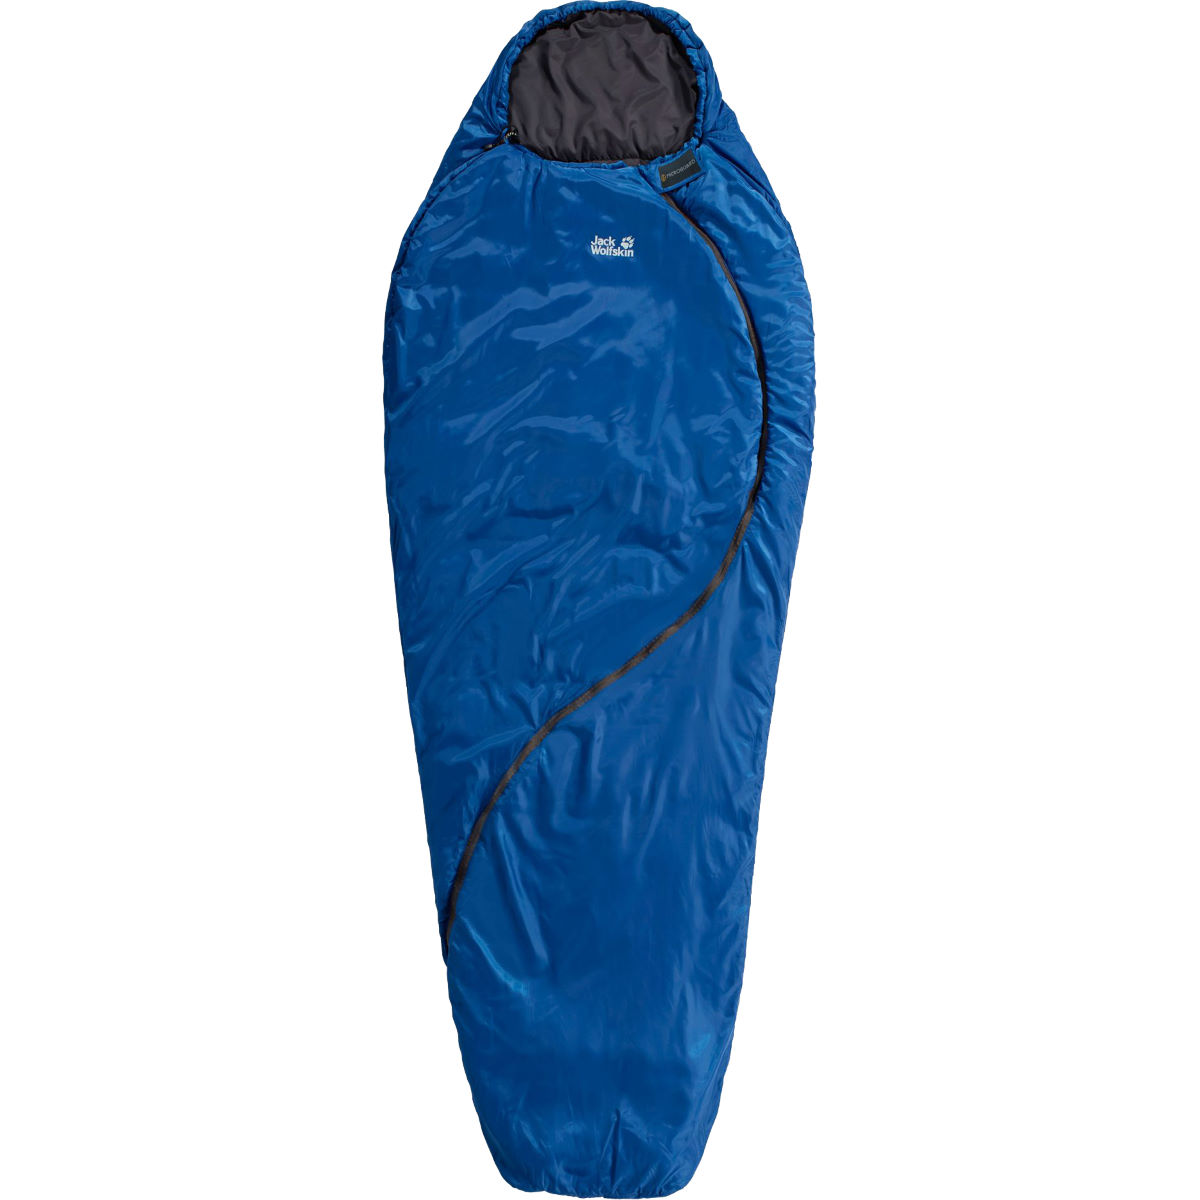 Jack Wolfskin SMOOZIP +3 Sleeping Bag - Sacos de dormir